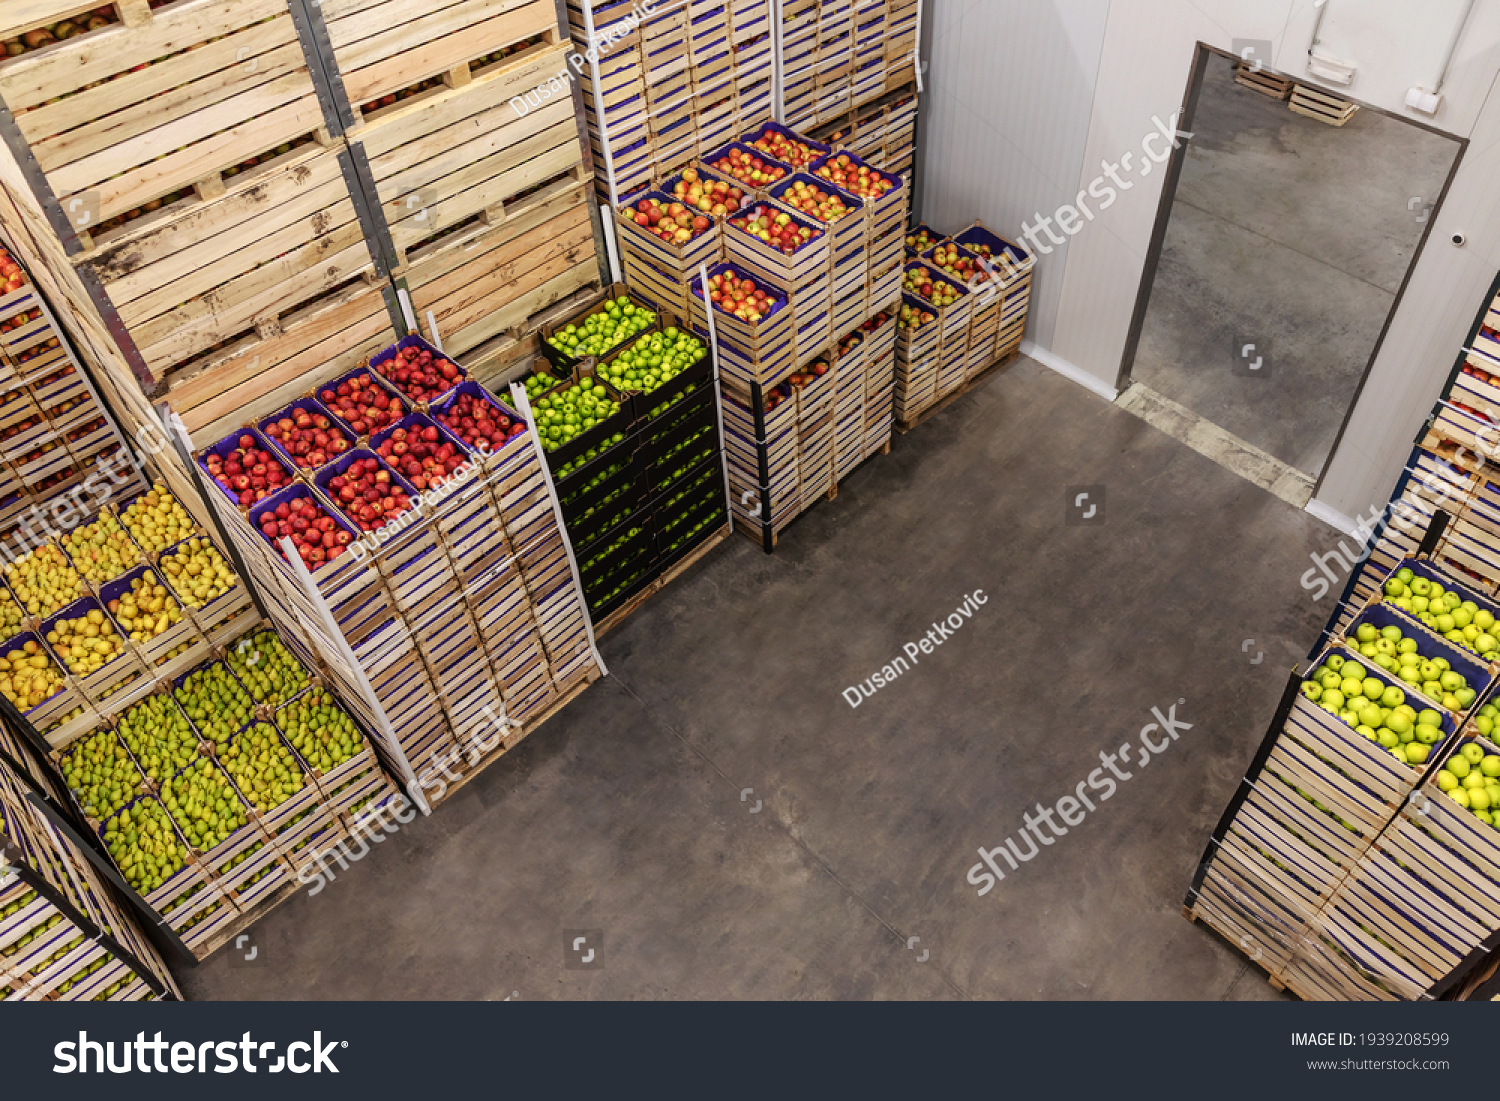 Apples and pears in crates ready for shipping. Cold storage interior. #1939208599